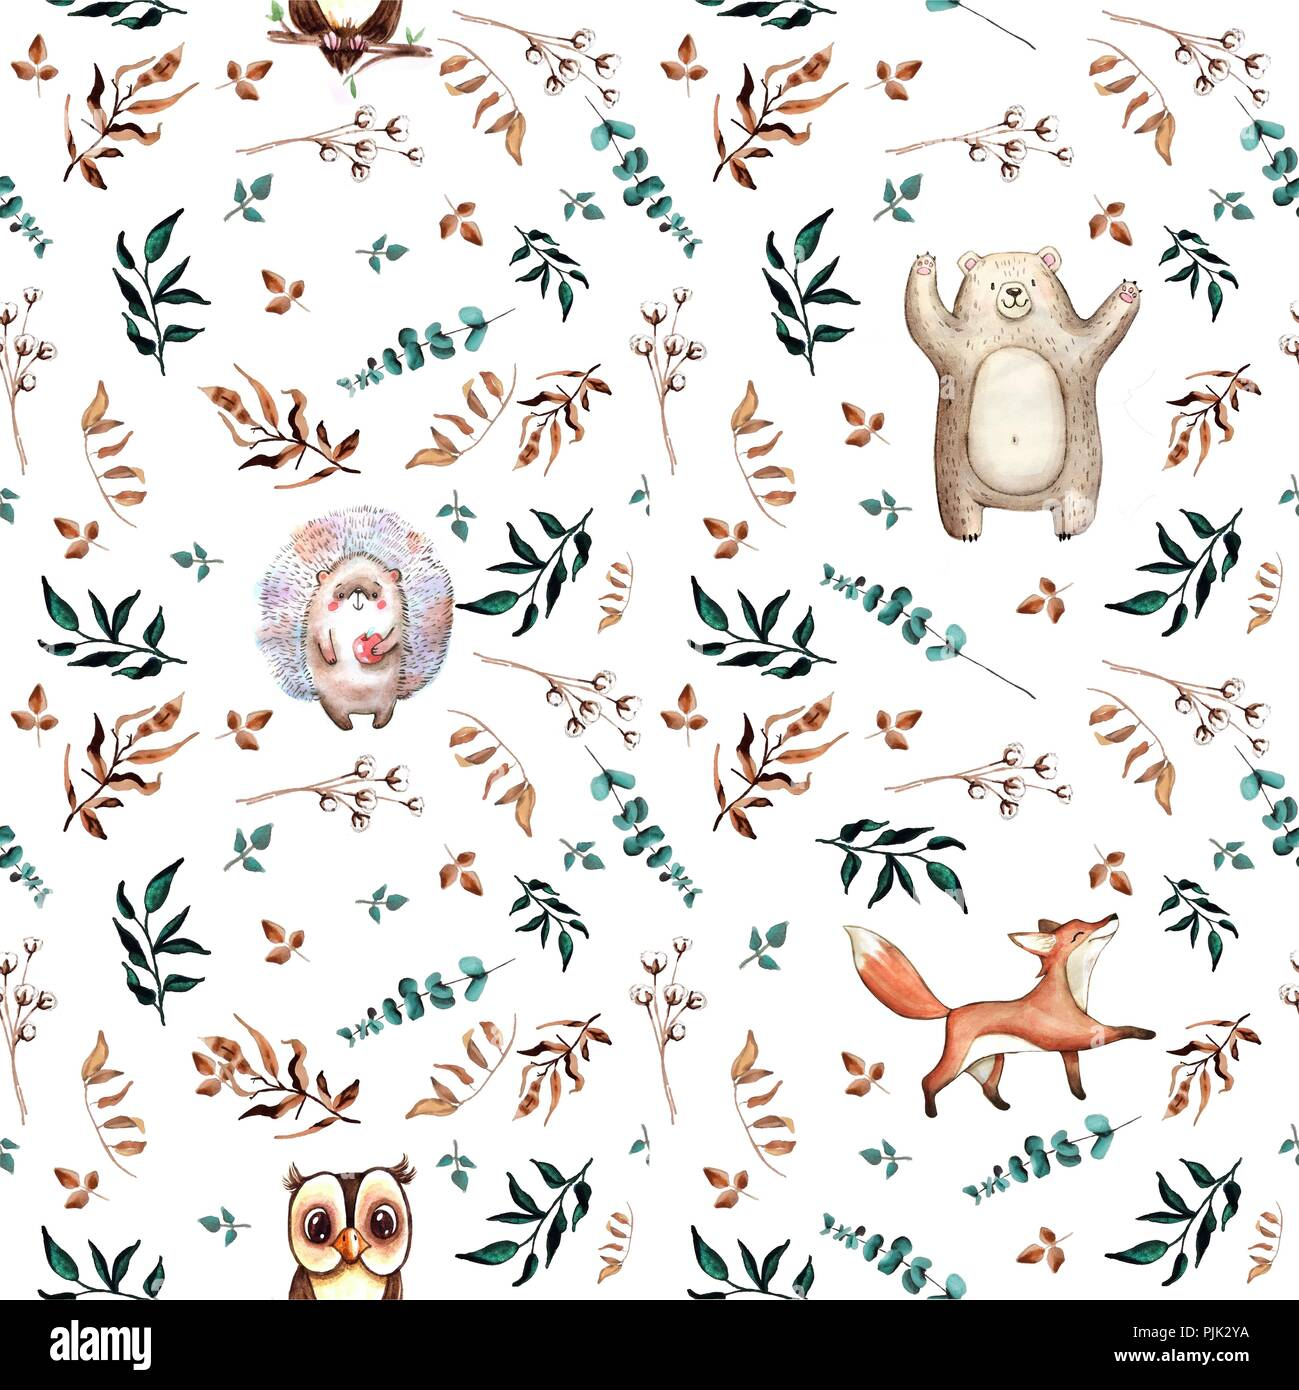 Watercolor cute hand drawn seamless pattern. Wild forest animals. Cheerful bear, fox, hedgehog, owl and mouse. - Stock Image